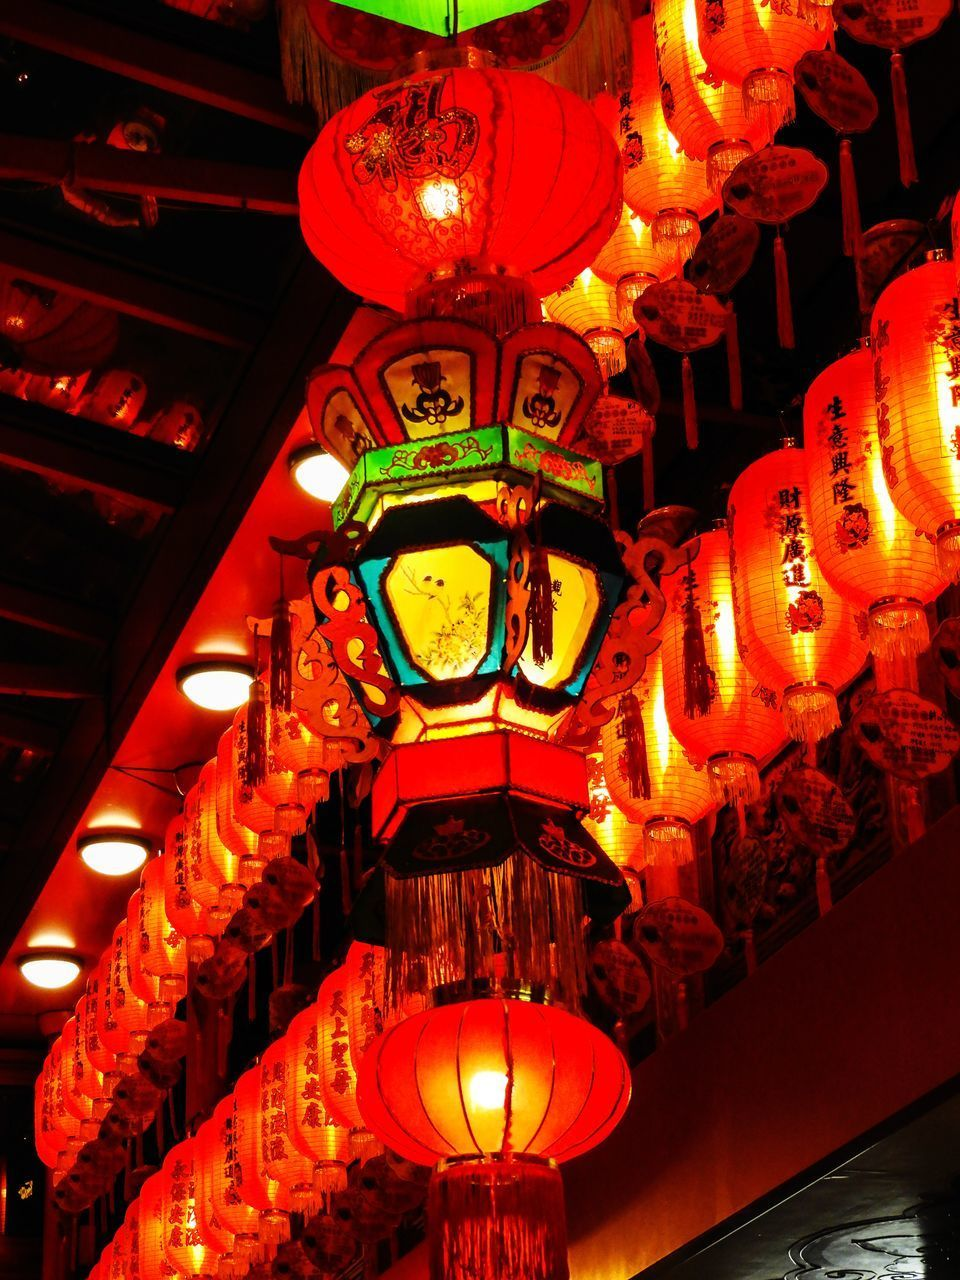 LOW ANGLE VIEW OF ILLUMINATED LANTERNS HANGING ON CEILING OUTSIDE BUILDING